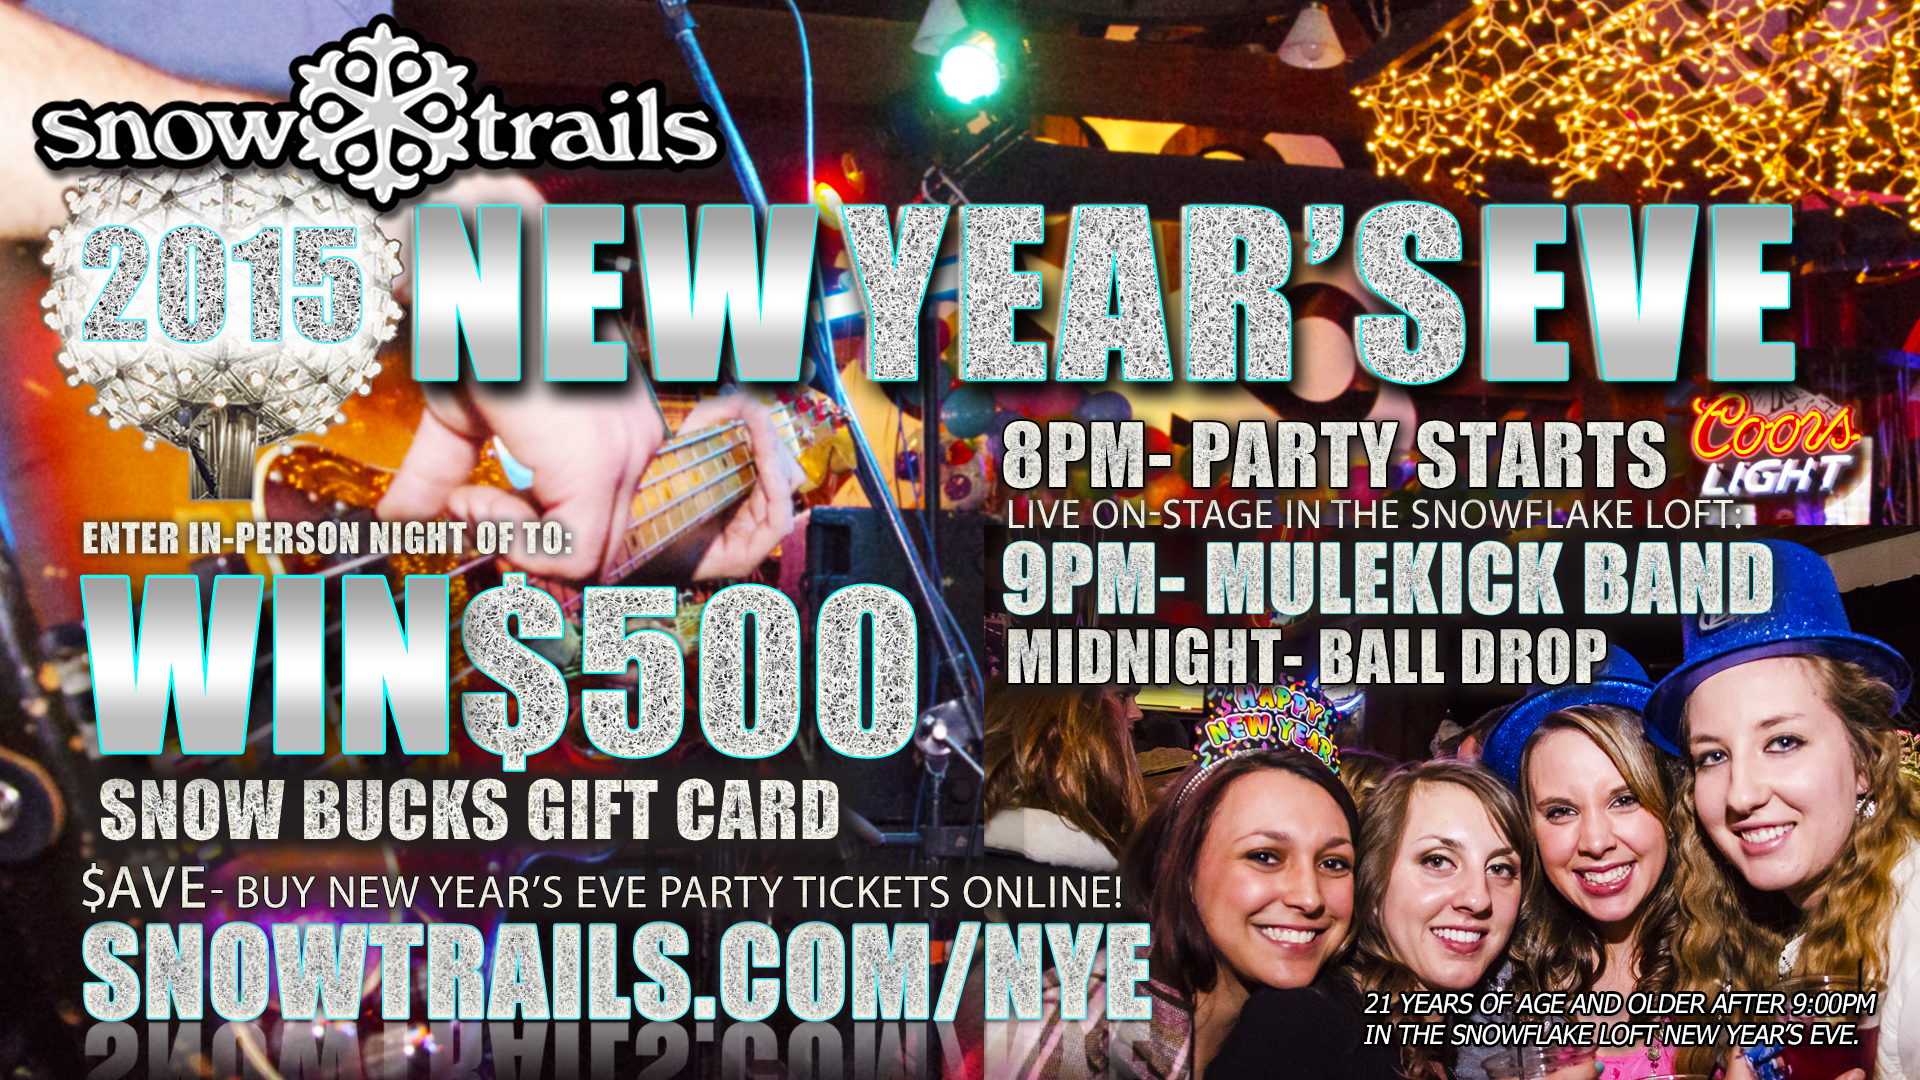 Win $500 at Snow Trails New Year's Eve Party with Mule Kick Band